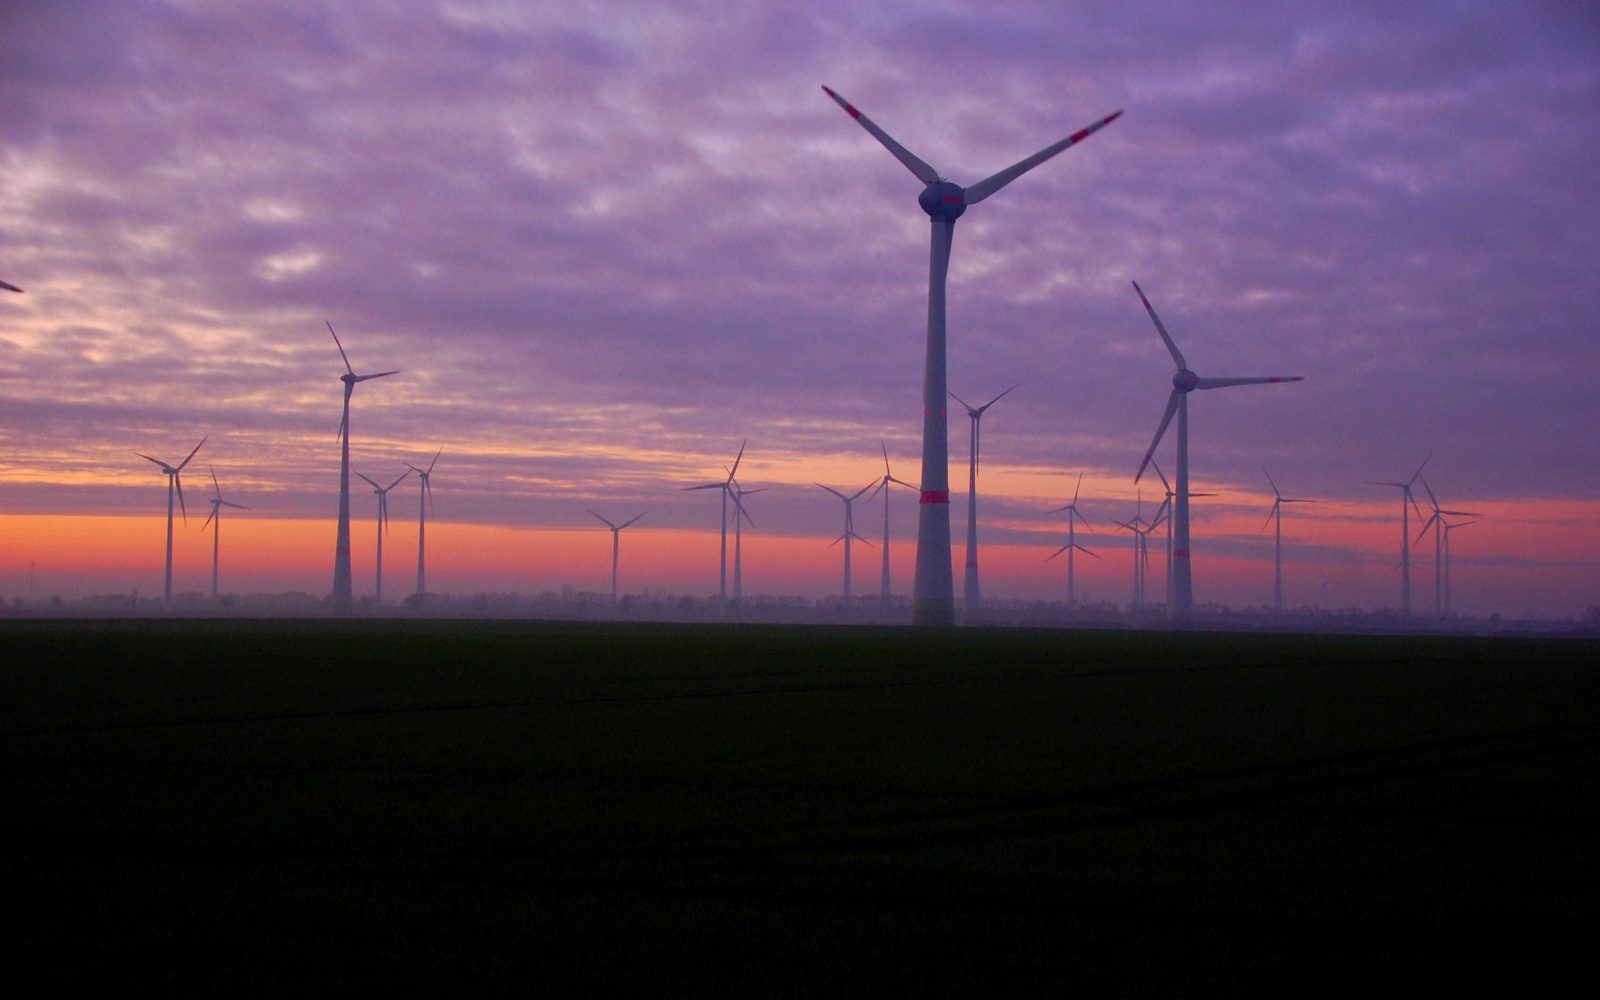 On Saturday 22 August, at 1am wind made up 59.1% of Britain's 13.5GW mix.